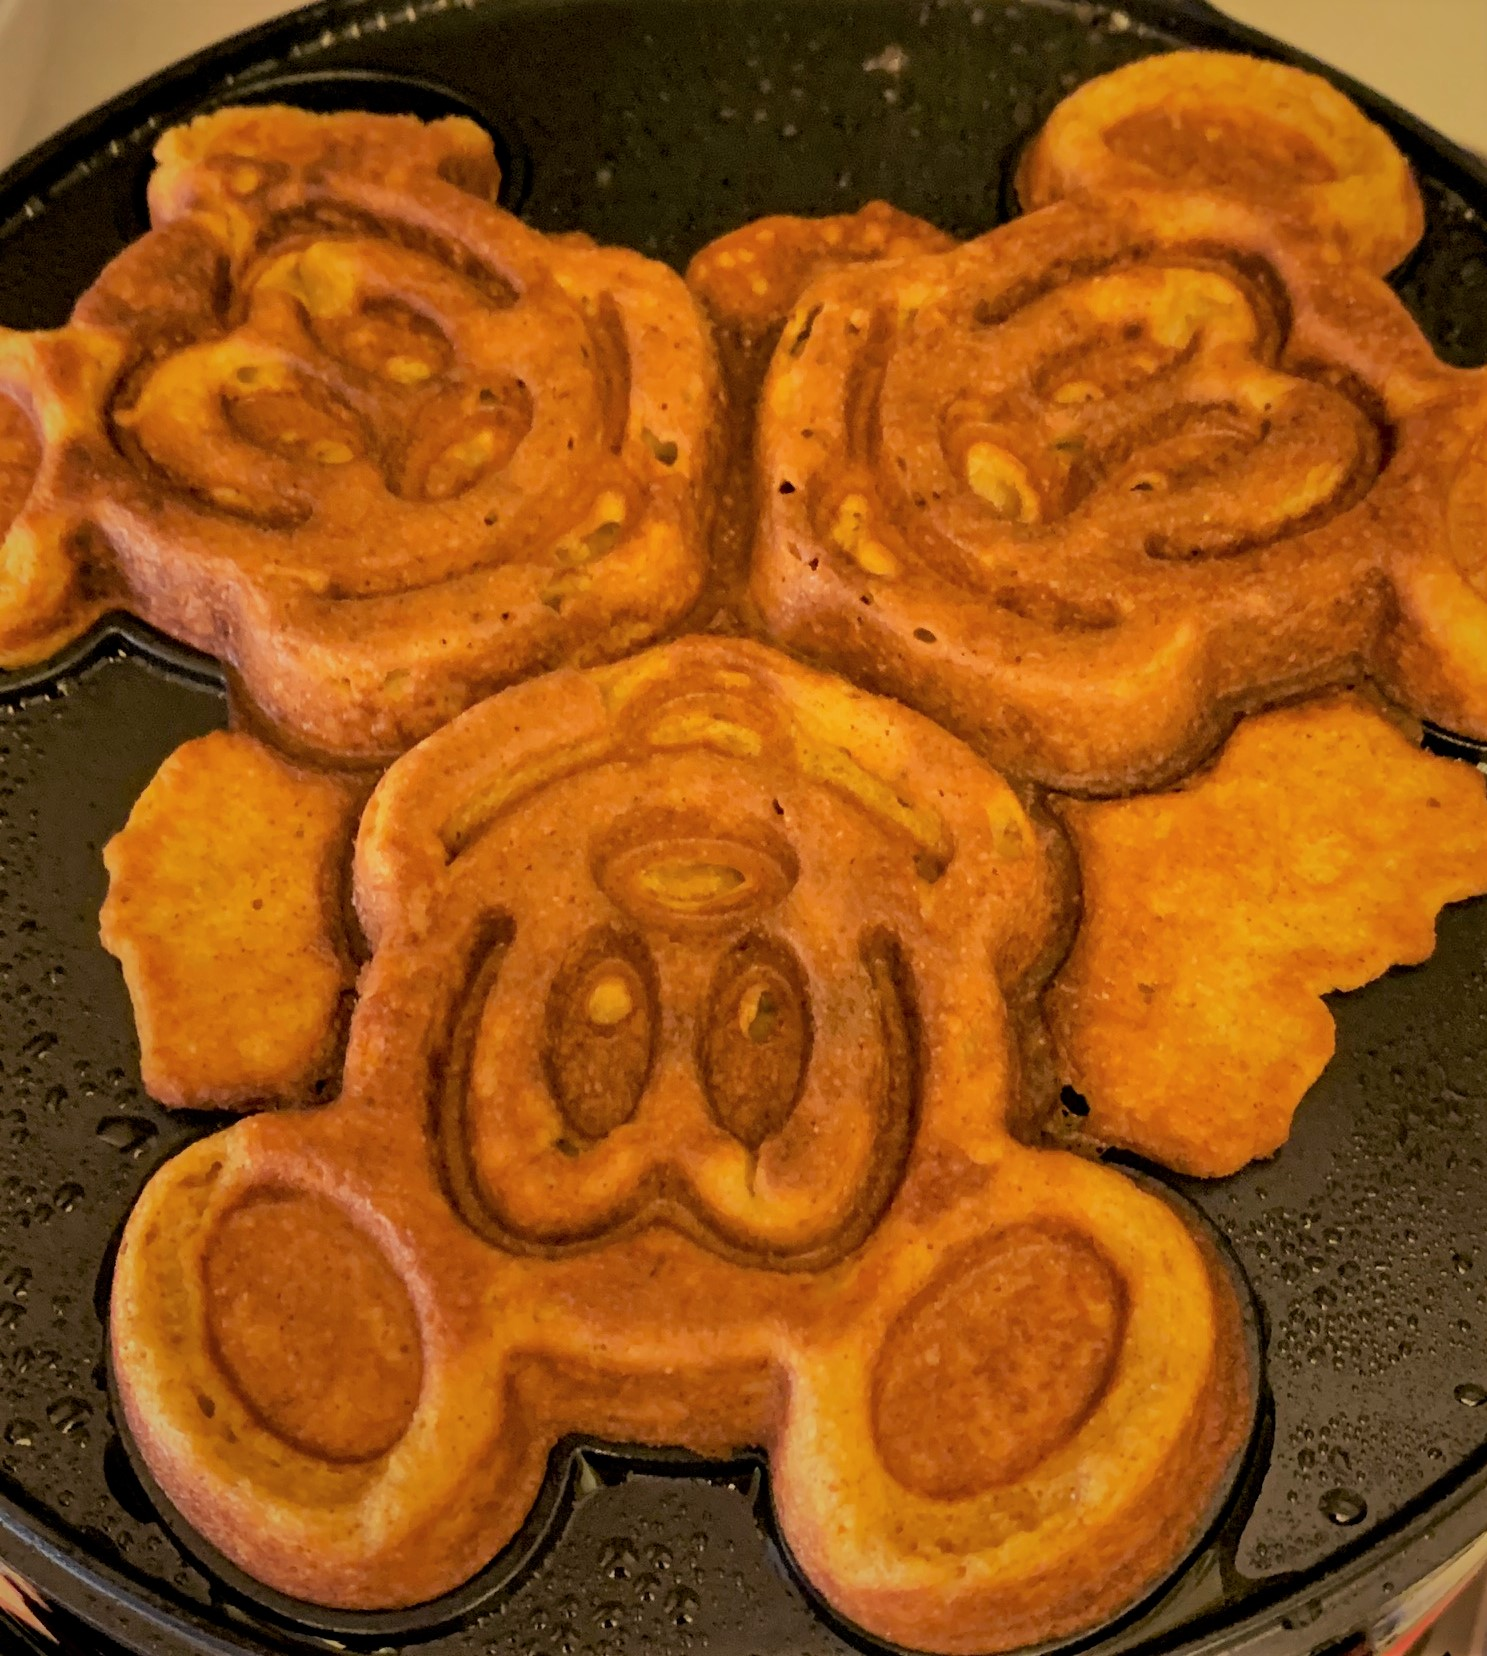 Our cooked Pumpkin Mickey Waffles